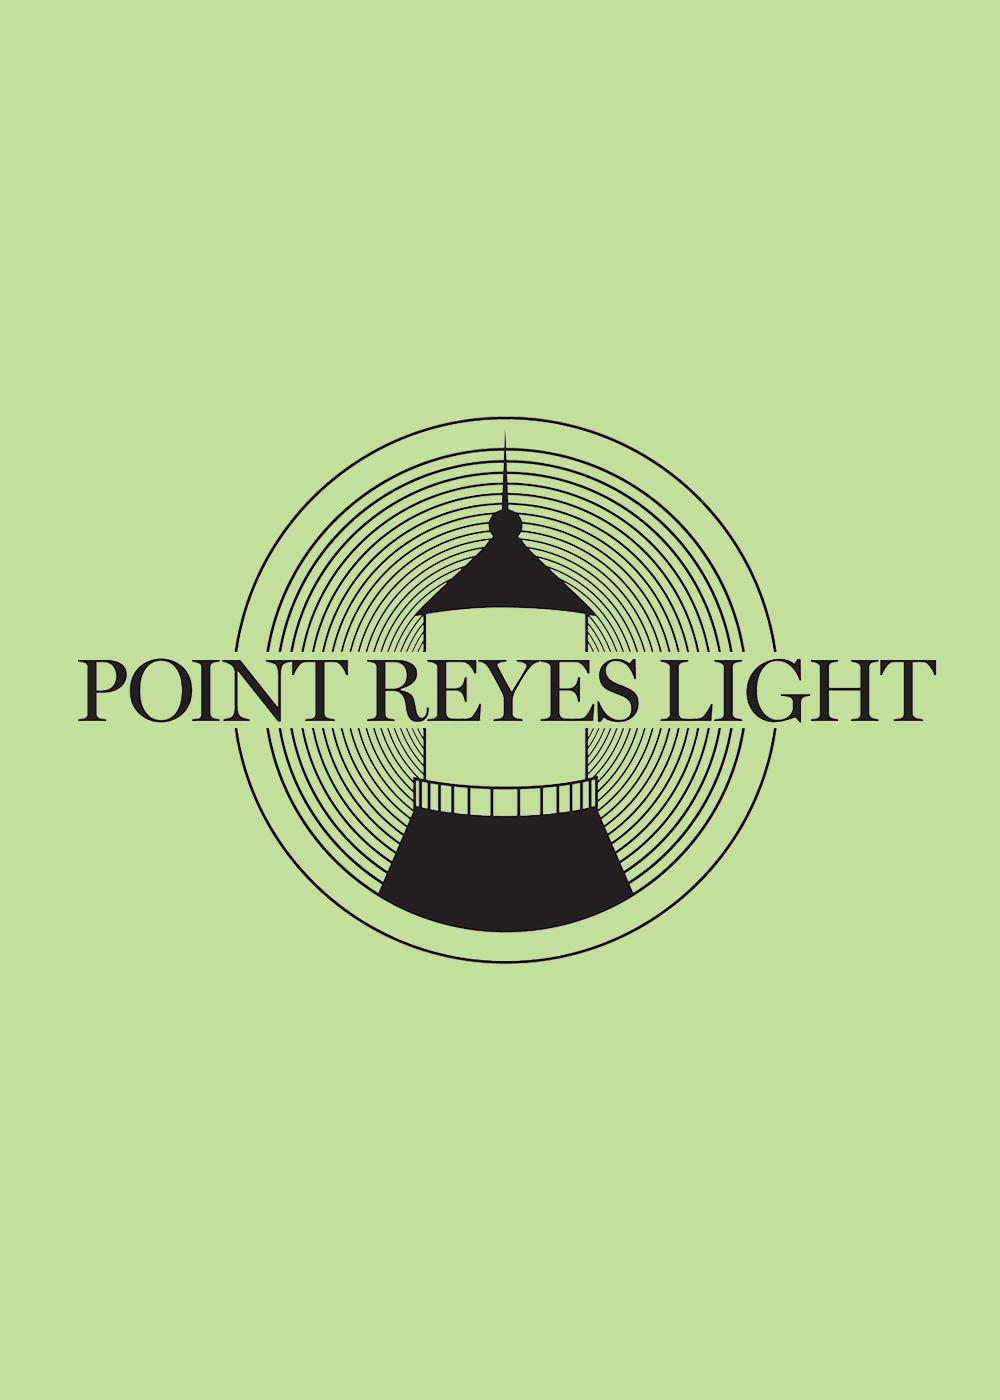 point-reyes-light-logo-green.jpg